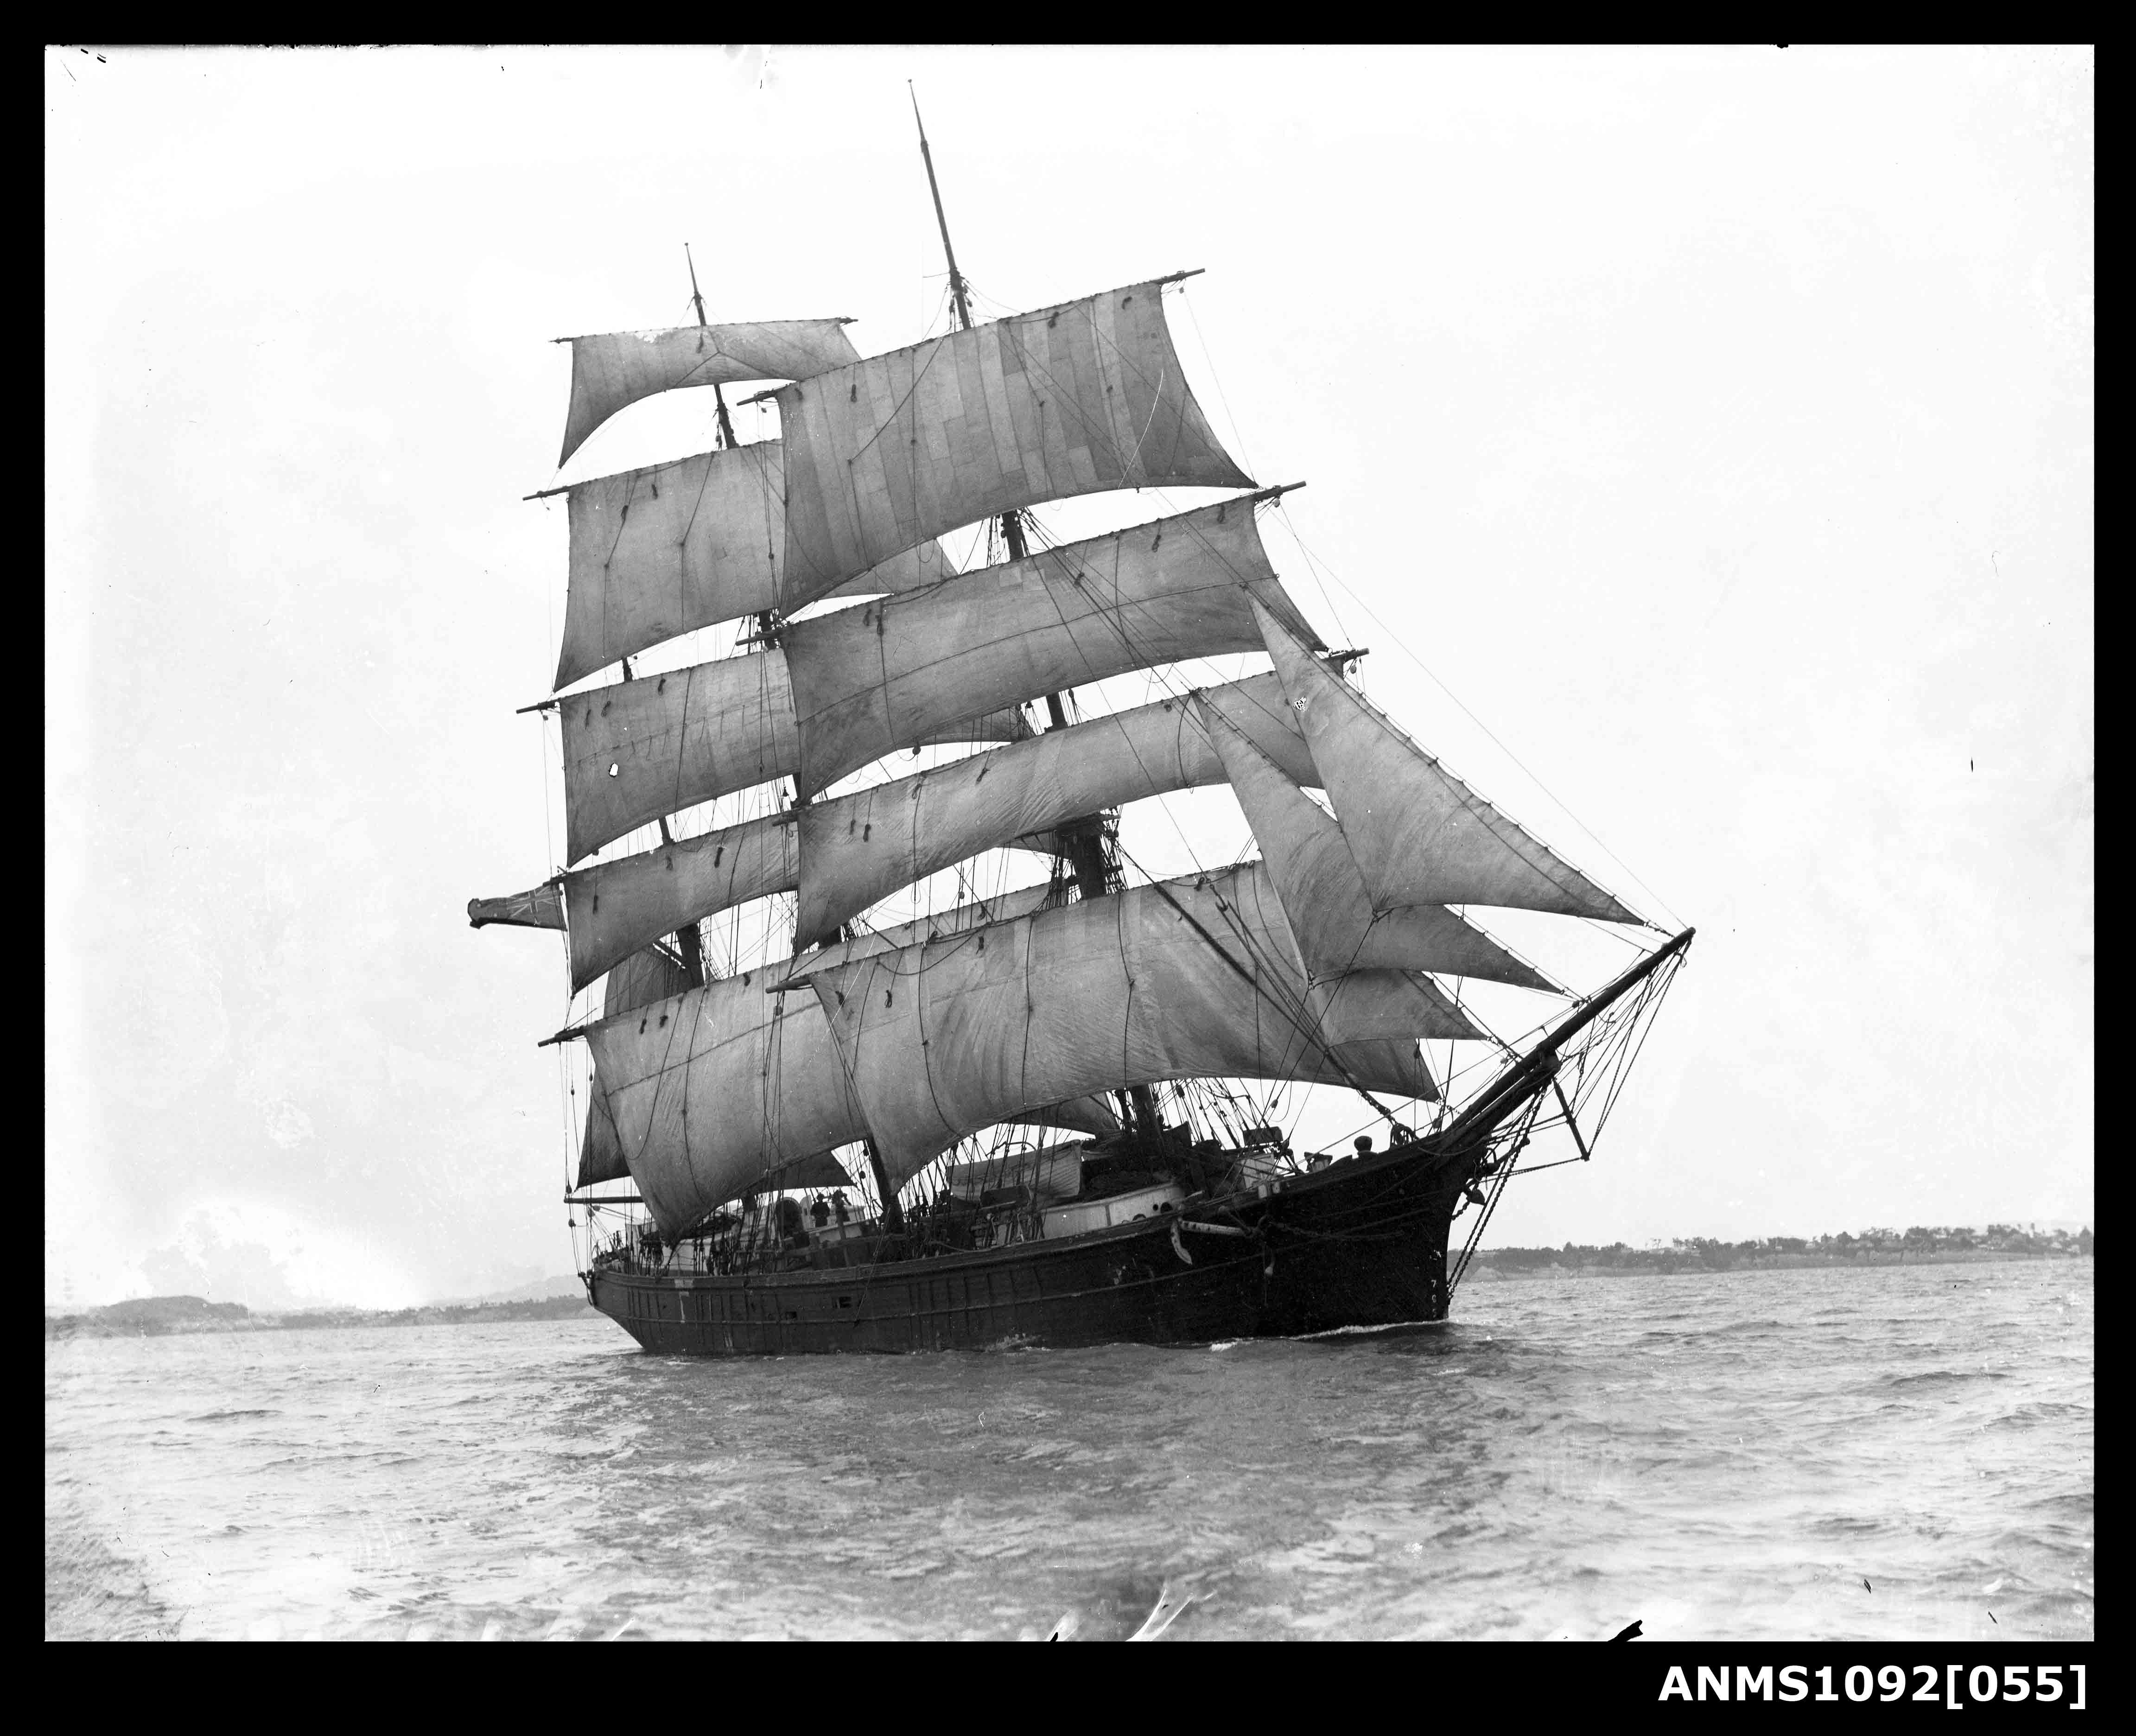 Three-masted barque underway with sails set, possibly Sydney Harbour